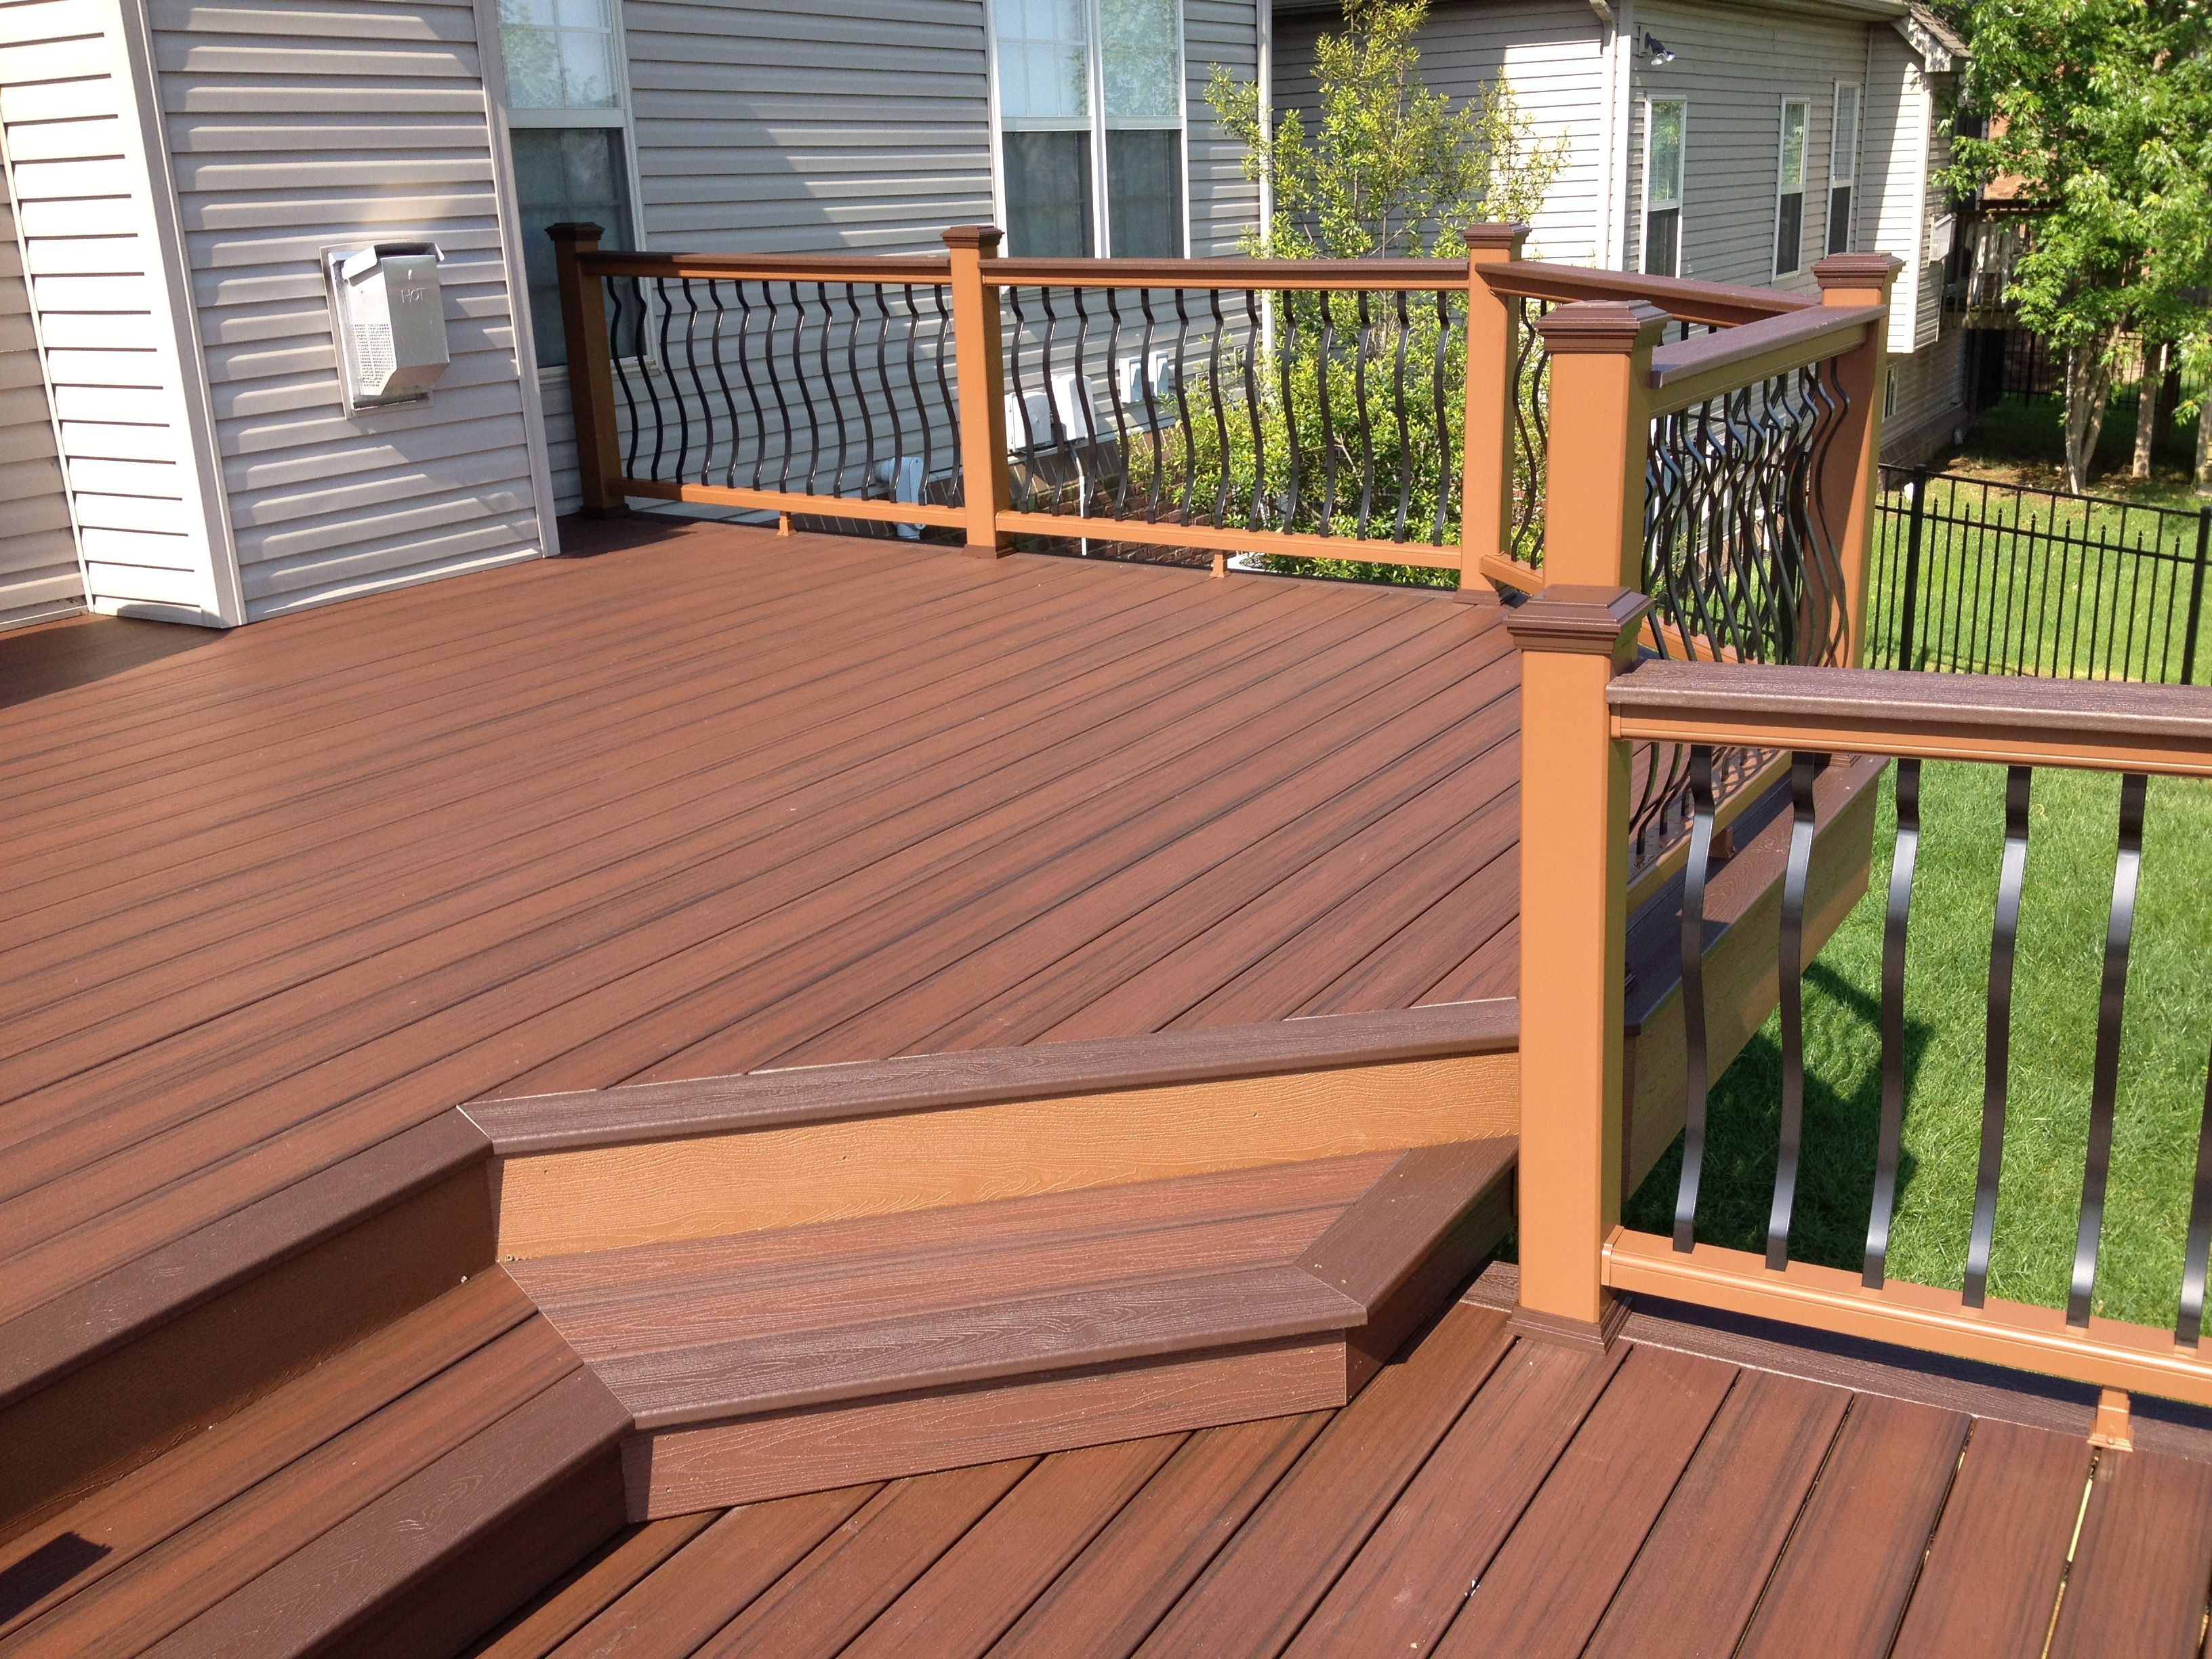 Lava Rock Tropical Finish Decking With Vintage Lantern Accents And Treehouse Posts Tail Rails